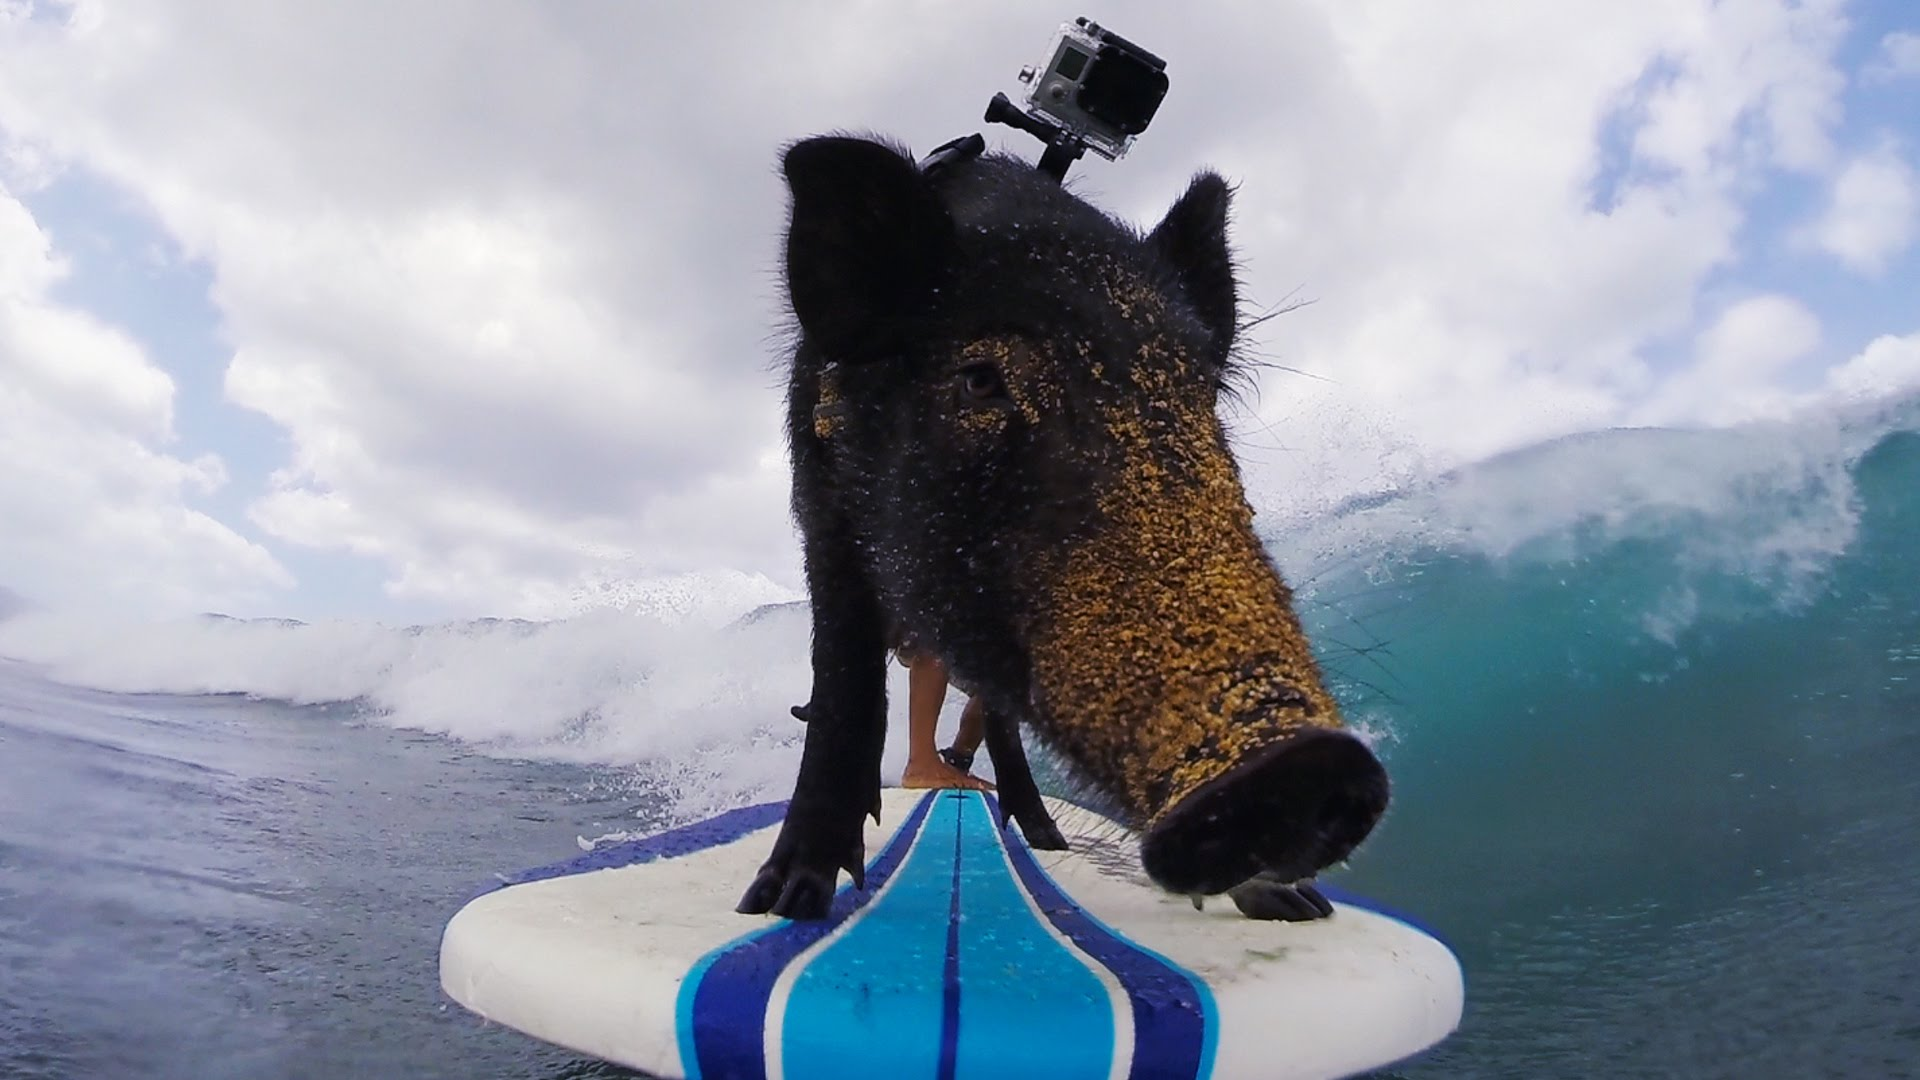 GoPro Video of Kamu the Surfing Pig Catching Waves in Oahu Hawaii 1920x1080